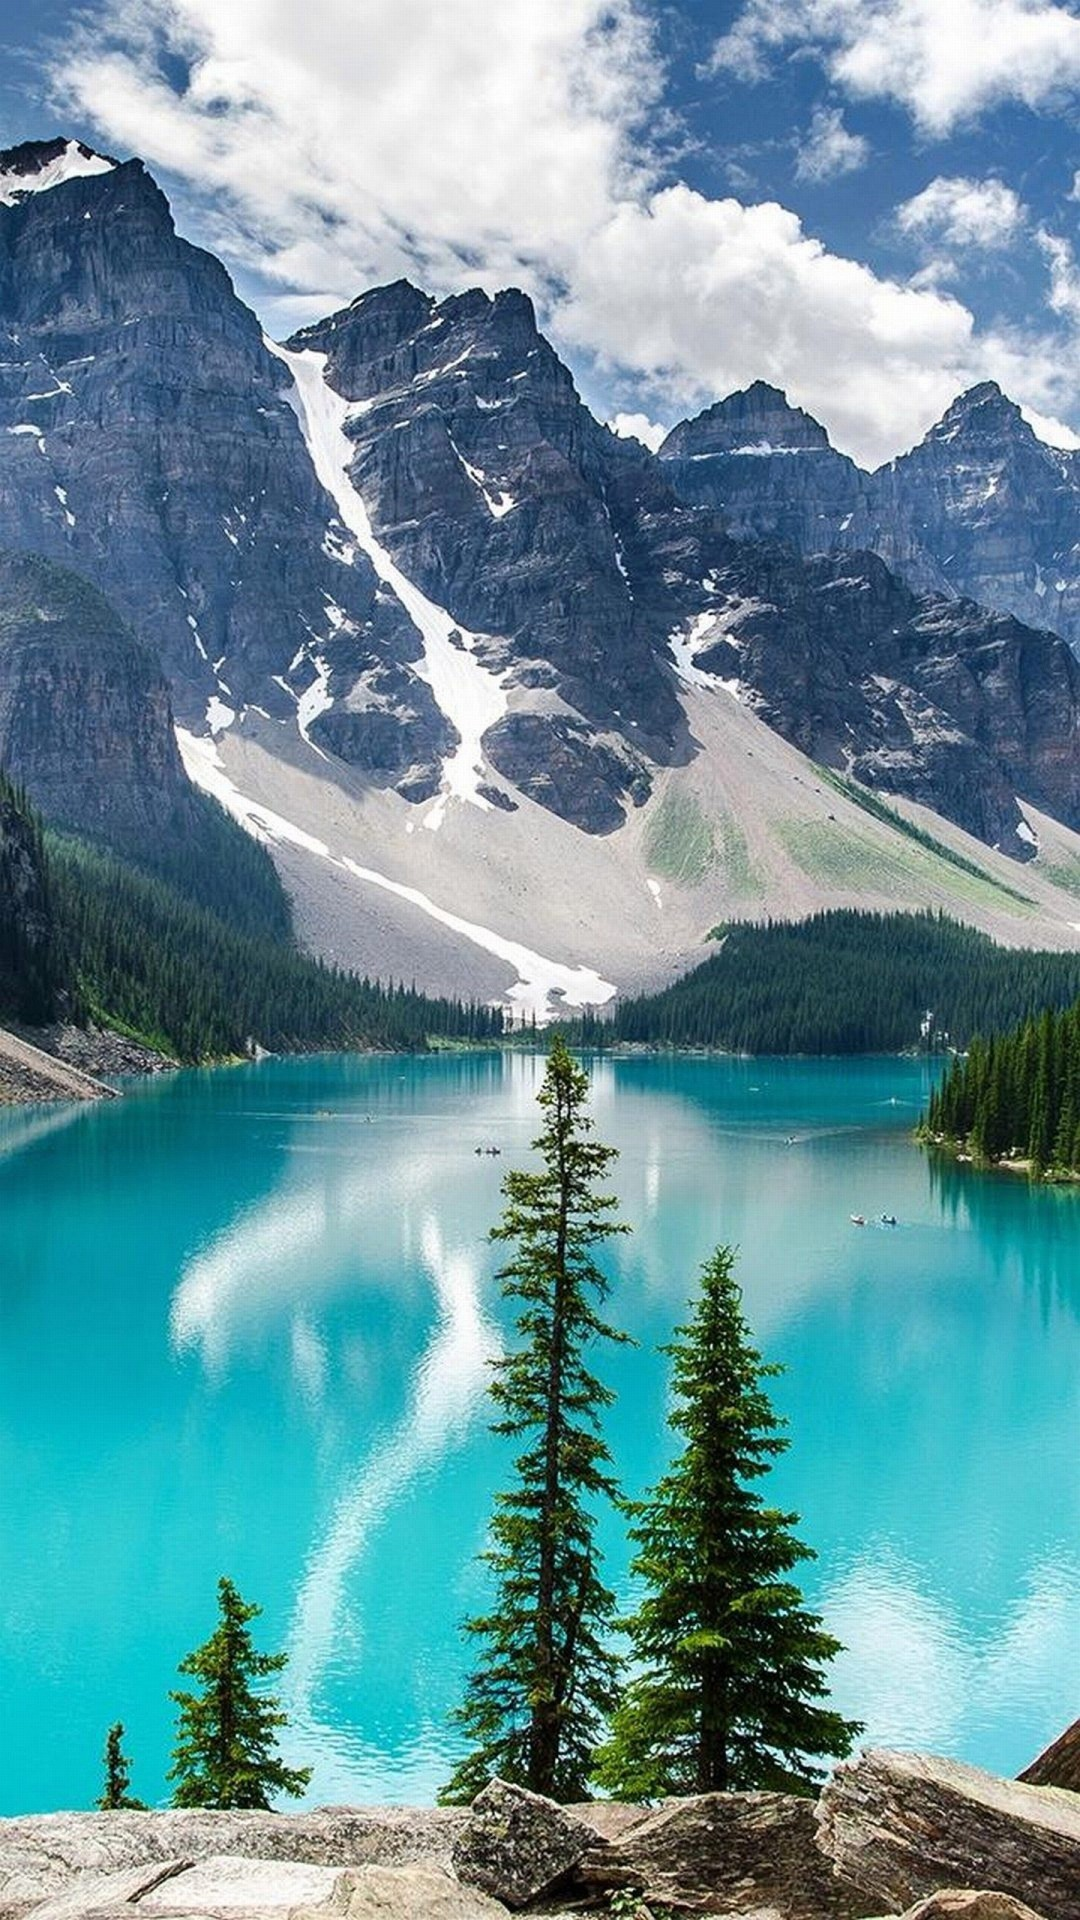 Popular Wallpaper Mountain Iphone 7 - lake-louise-at-canada-wallpaper-background-1080x1920  Picture_386018.jpg